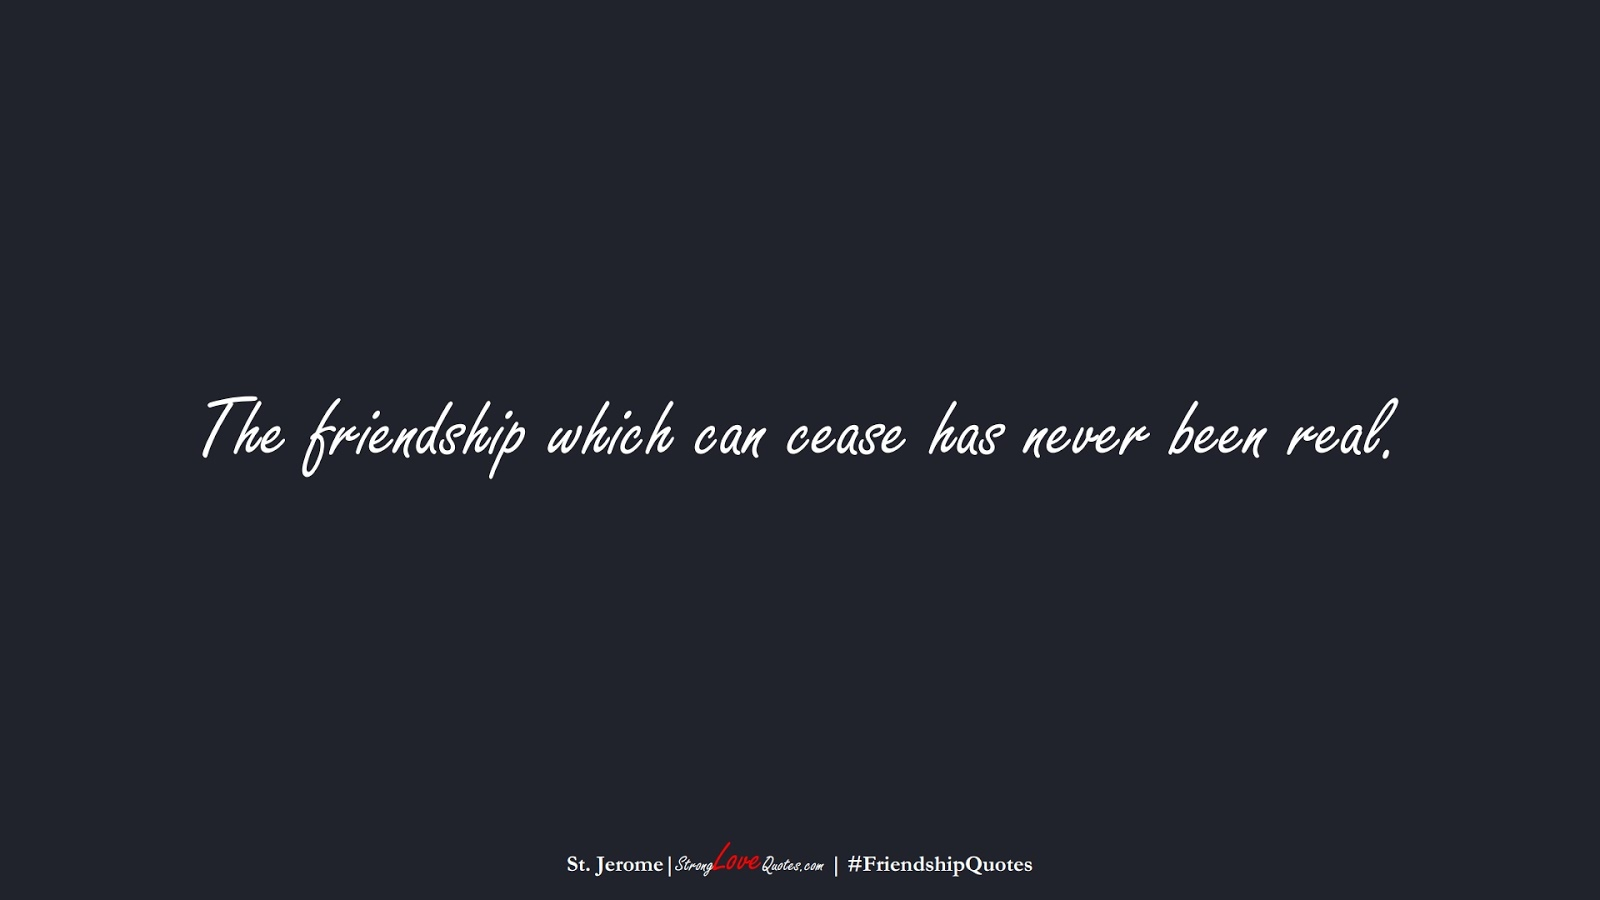 The friendship which can cease has never been real. (St. Jerome);  #FriendshipQuotes